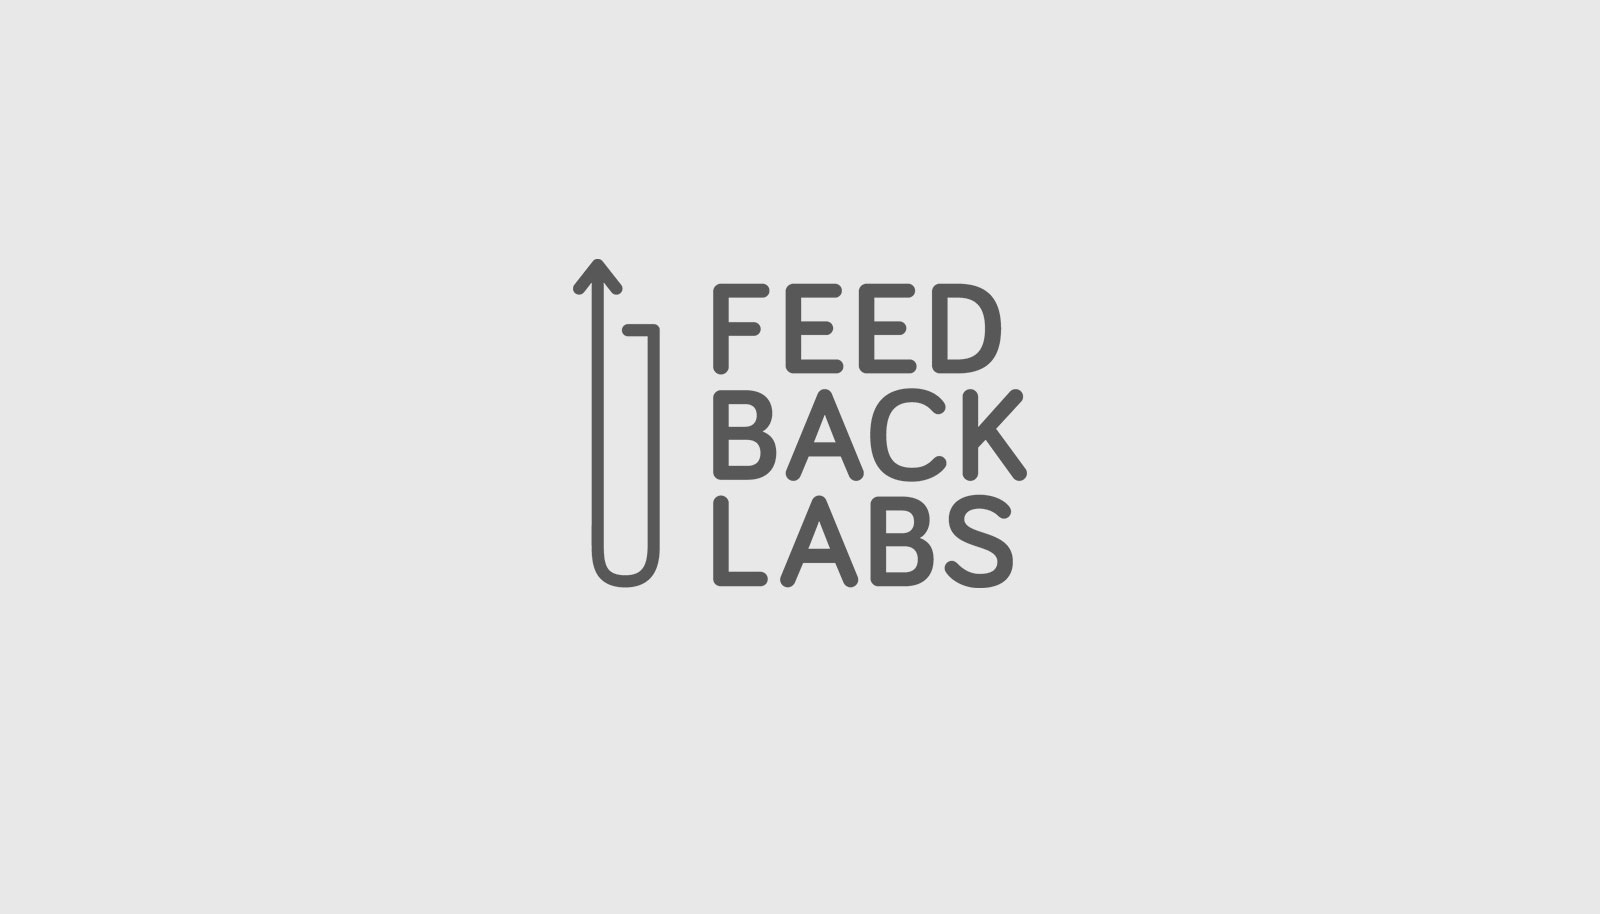 project-logo-feedbackloop-gry.jpg